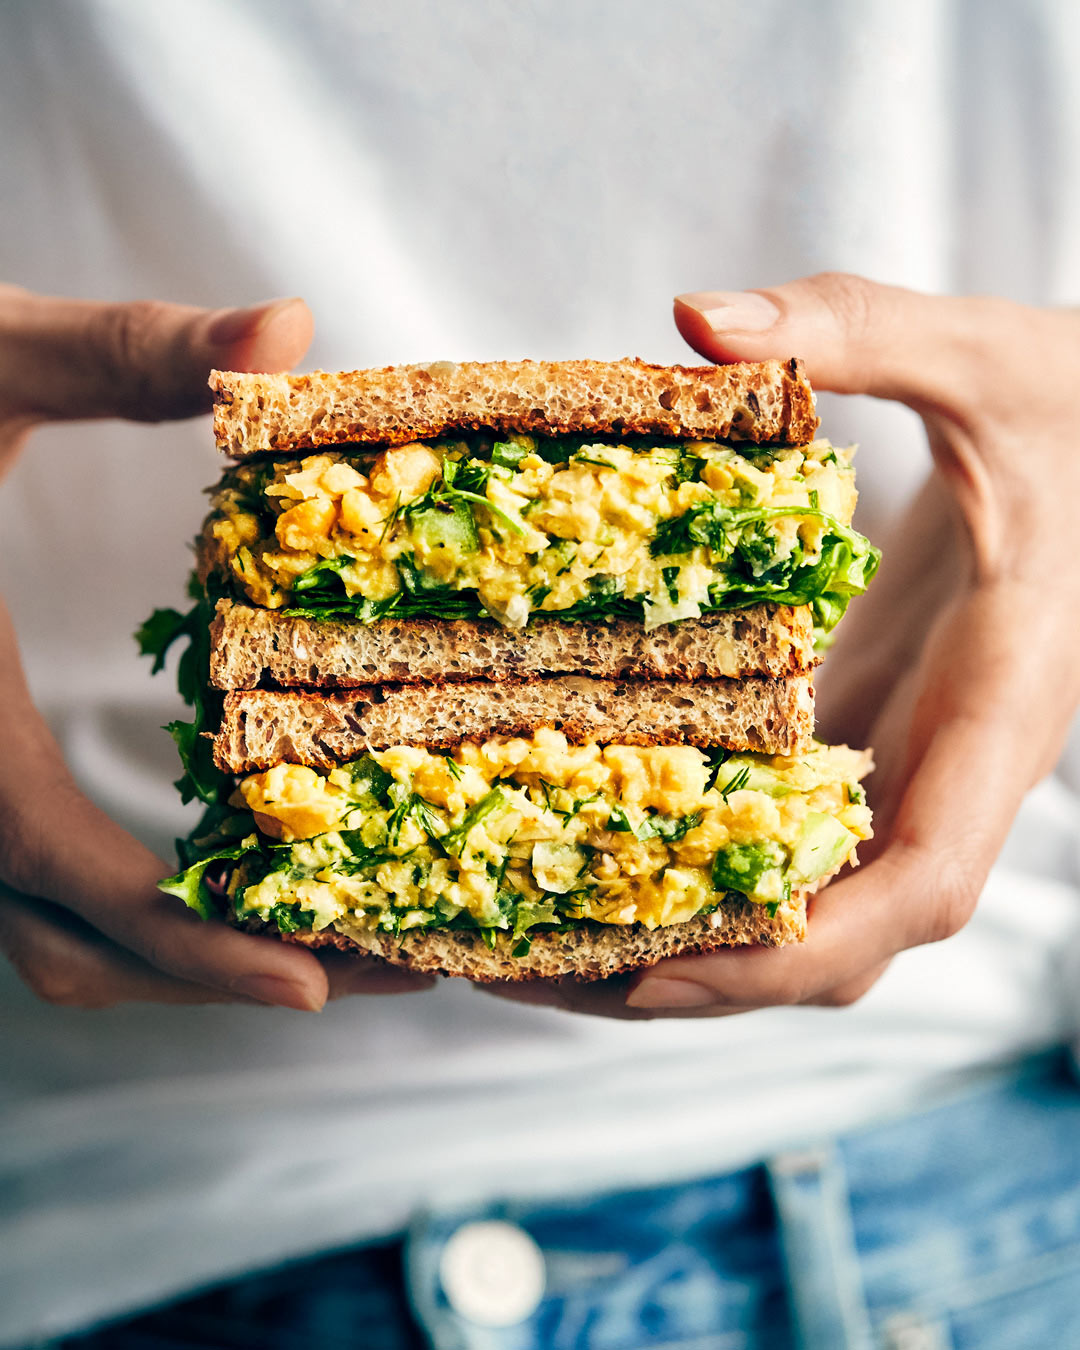 Lemon & Dill Chickpea Sandwich | Evergreen Kitchen | Vegan, gluten free (option)